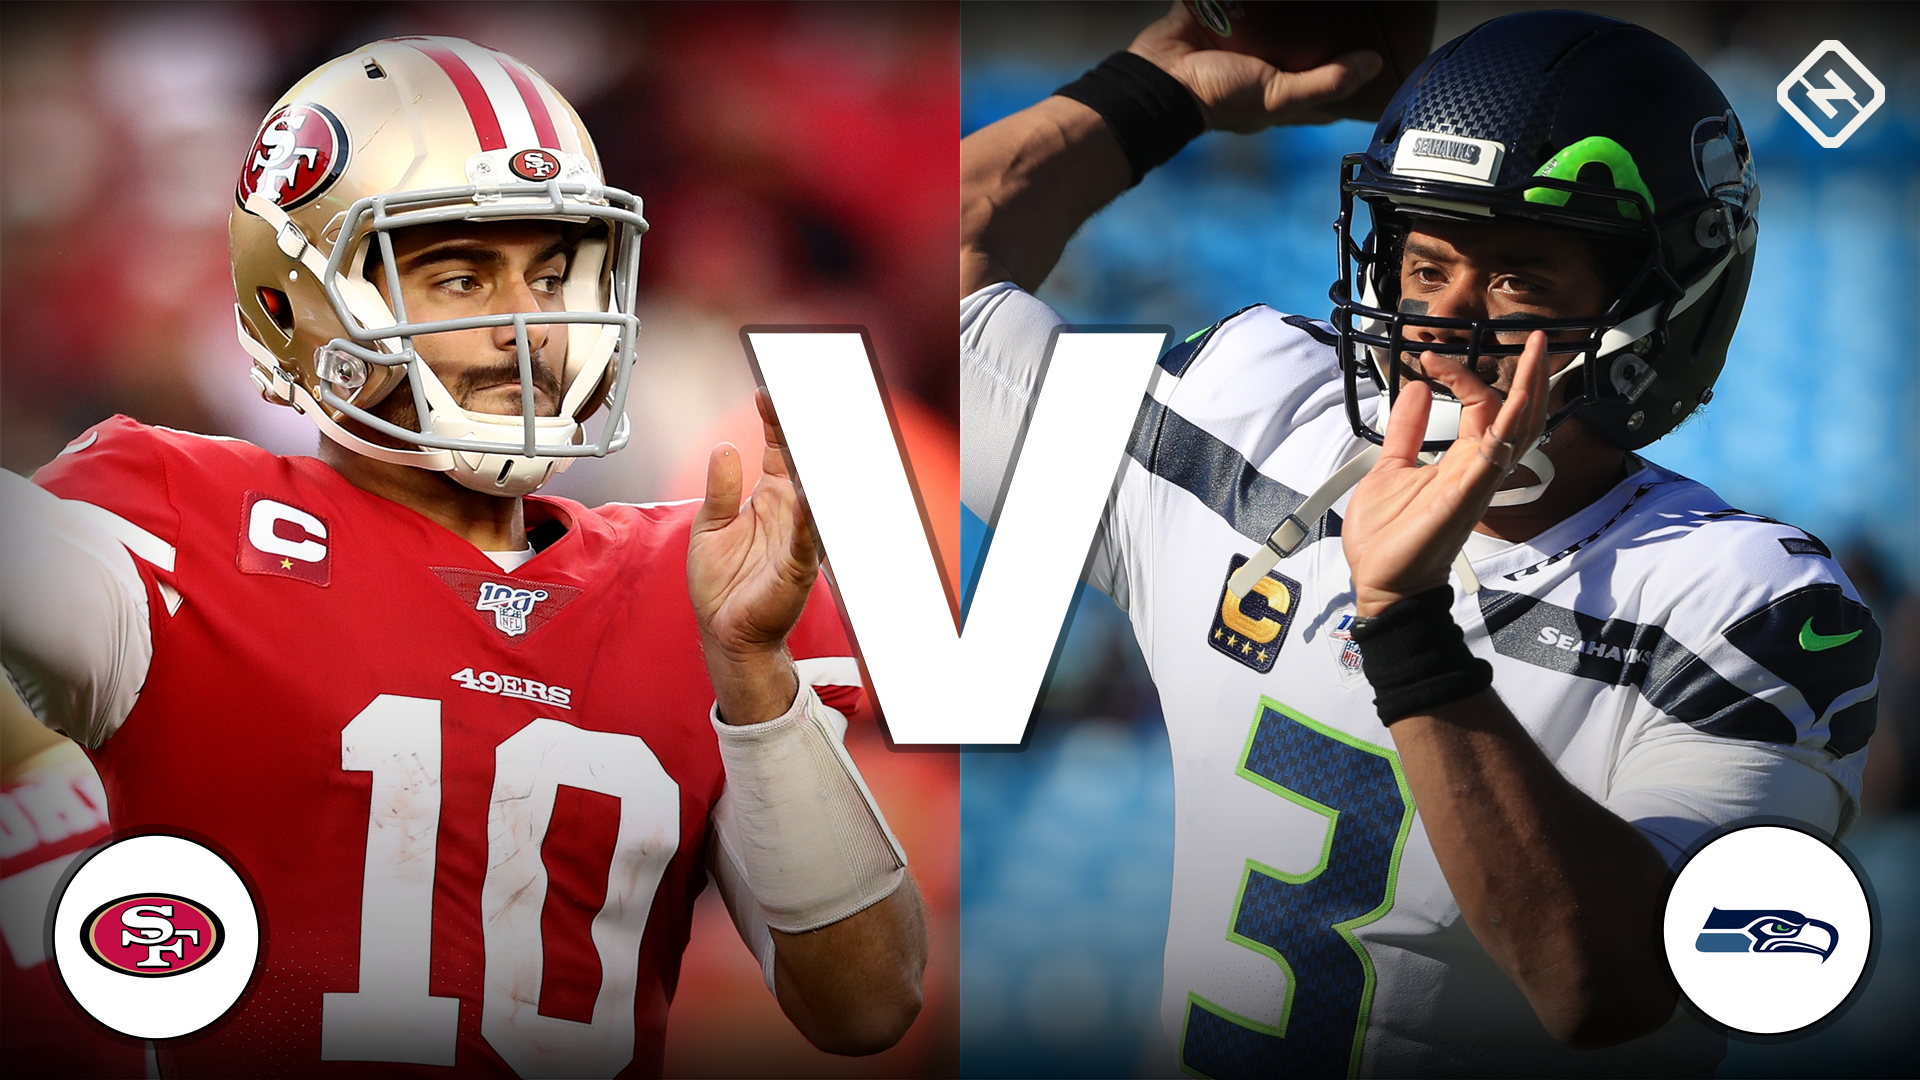 How To Watch 49ers Vs Seahawks Time Live Stream In Canada